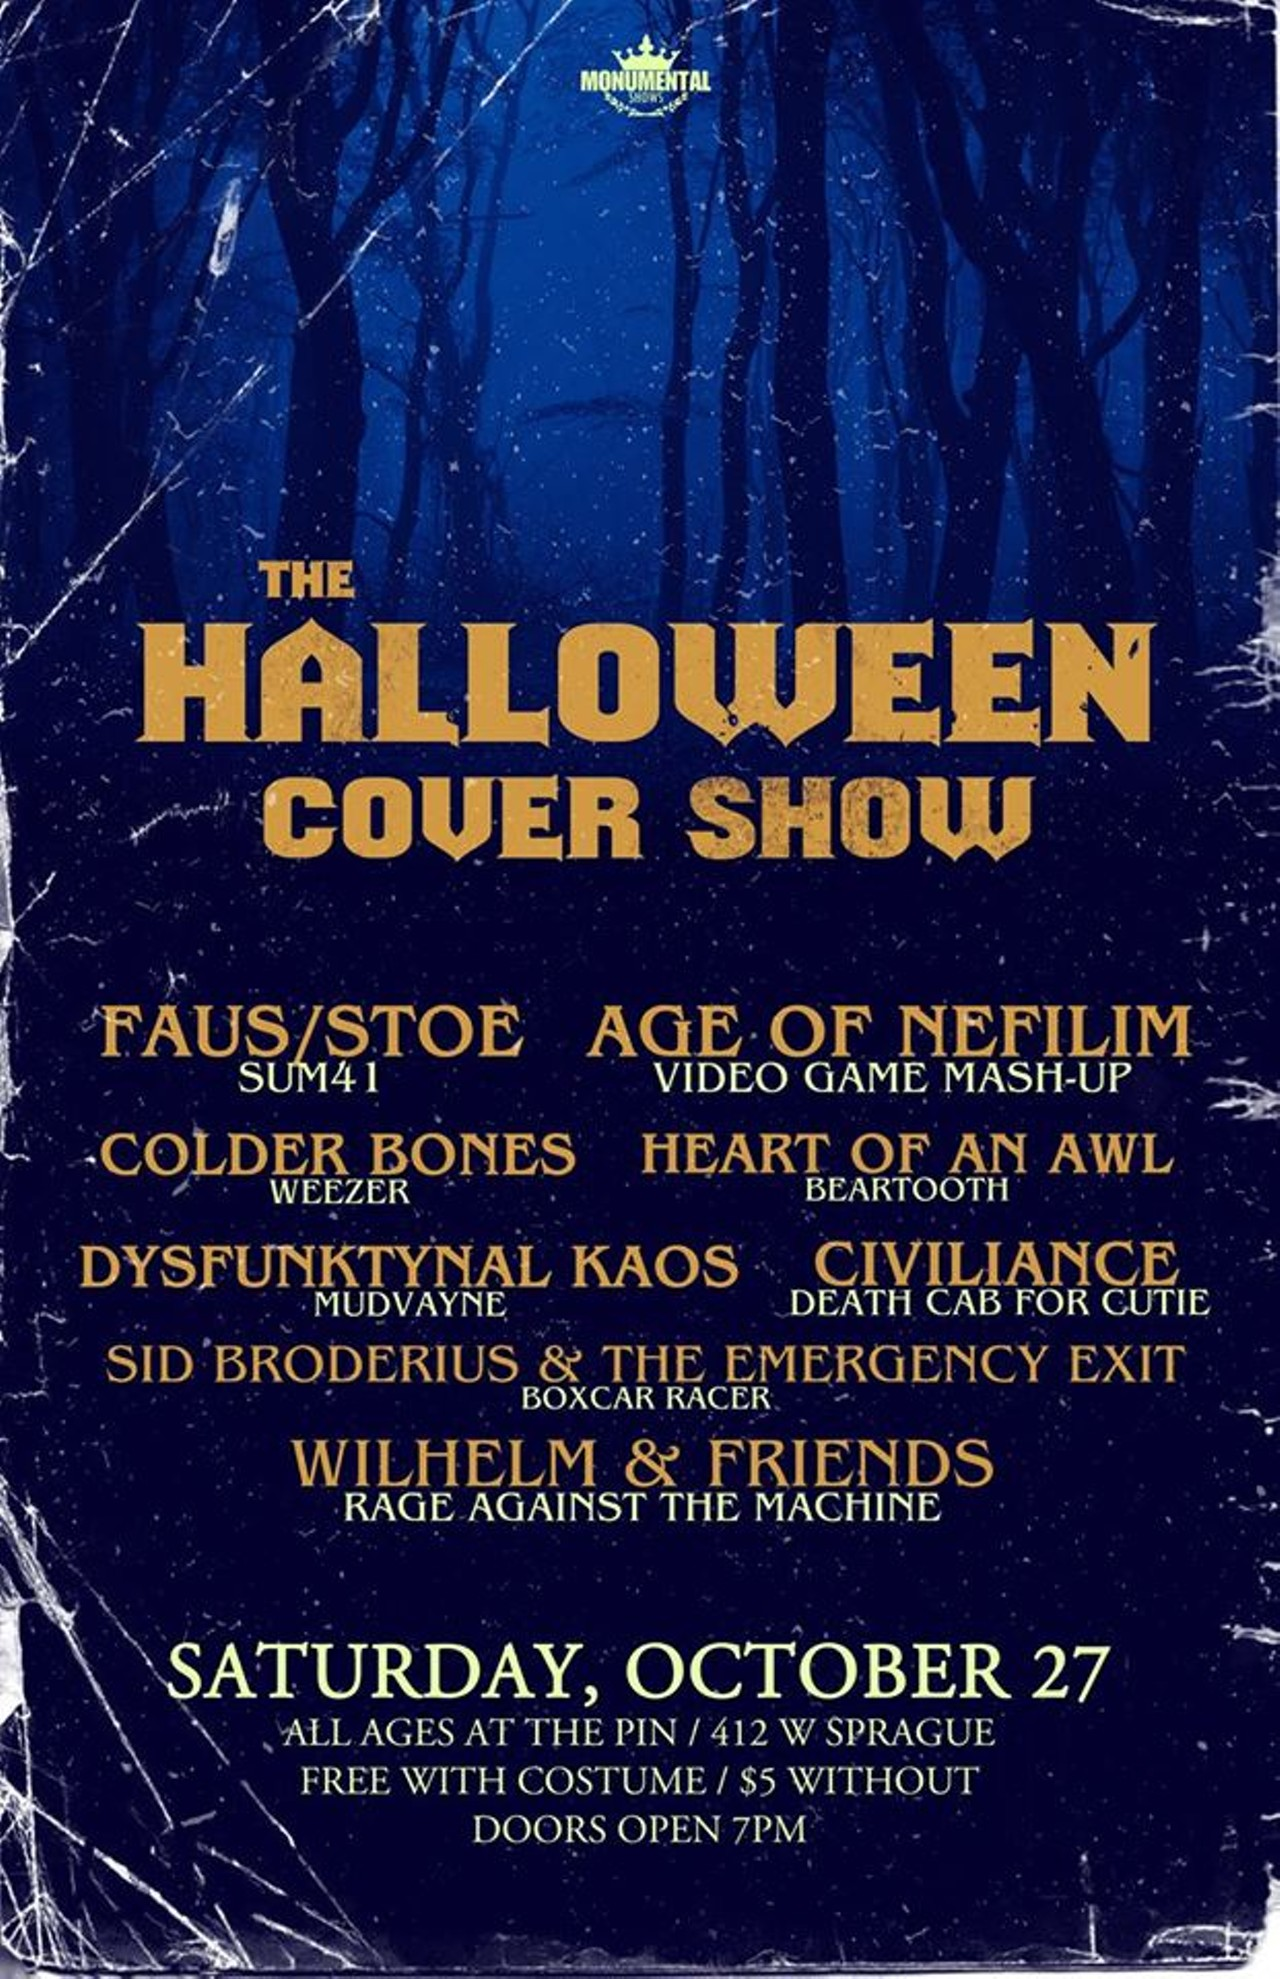 halloween cover show w/age of nefilim, faus, dysfunktynal kaos, sid